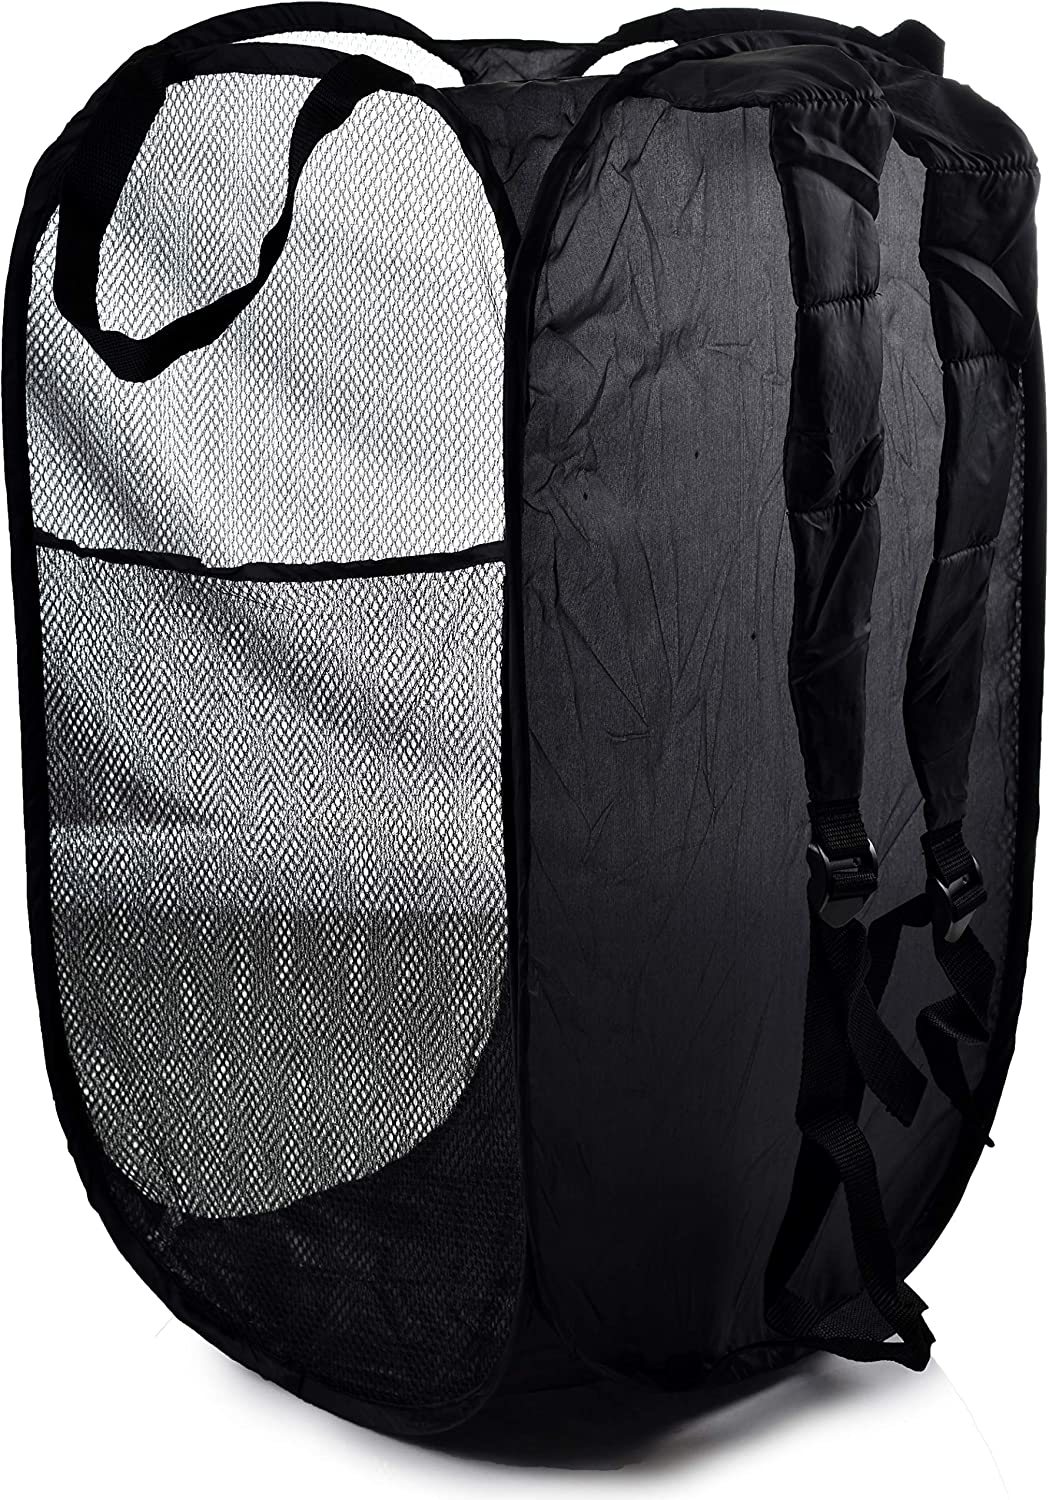 Backpack Mesh Popup Laundry Hamper - Portable, Durable Handles, Collapsible for Storage and Easy to Open. Folding Pop-Up Clothes Hampers are Great for The Kids Room, College Dorm or Travel. (Black)